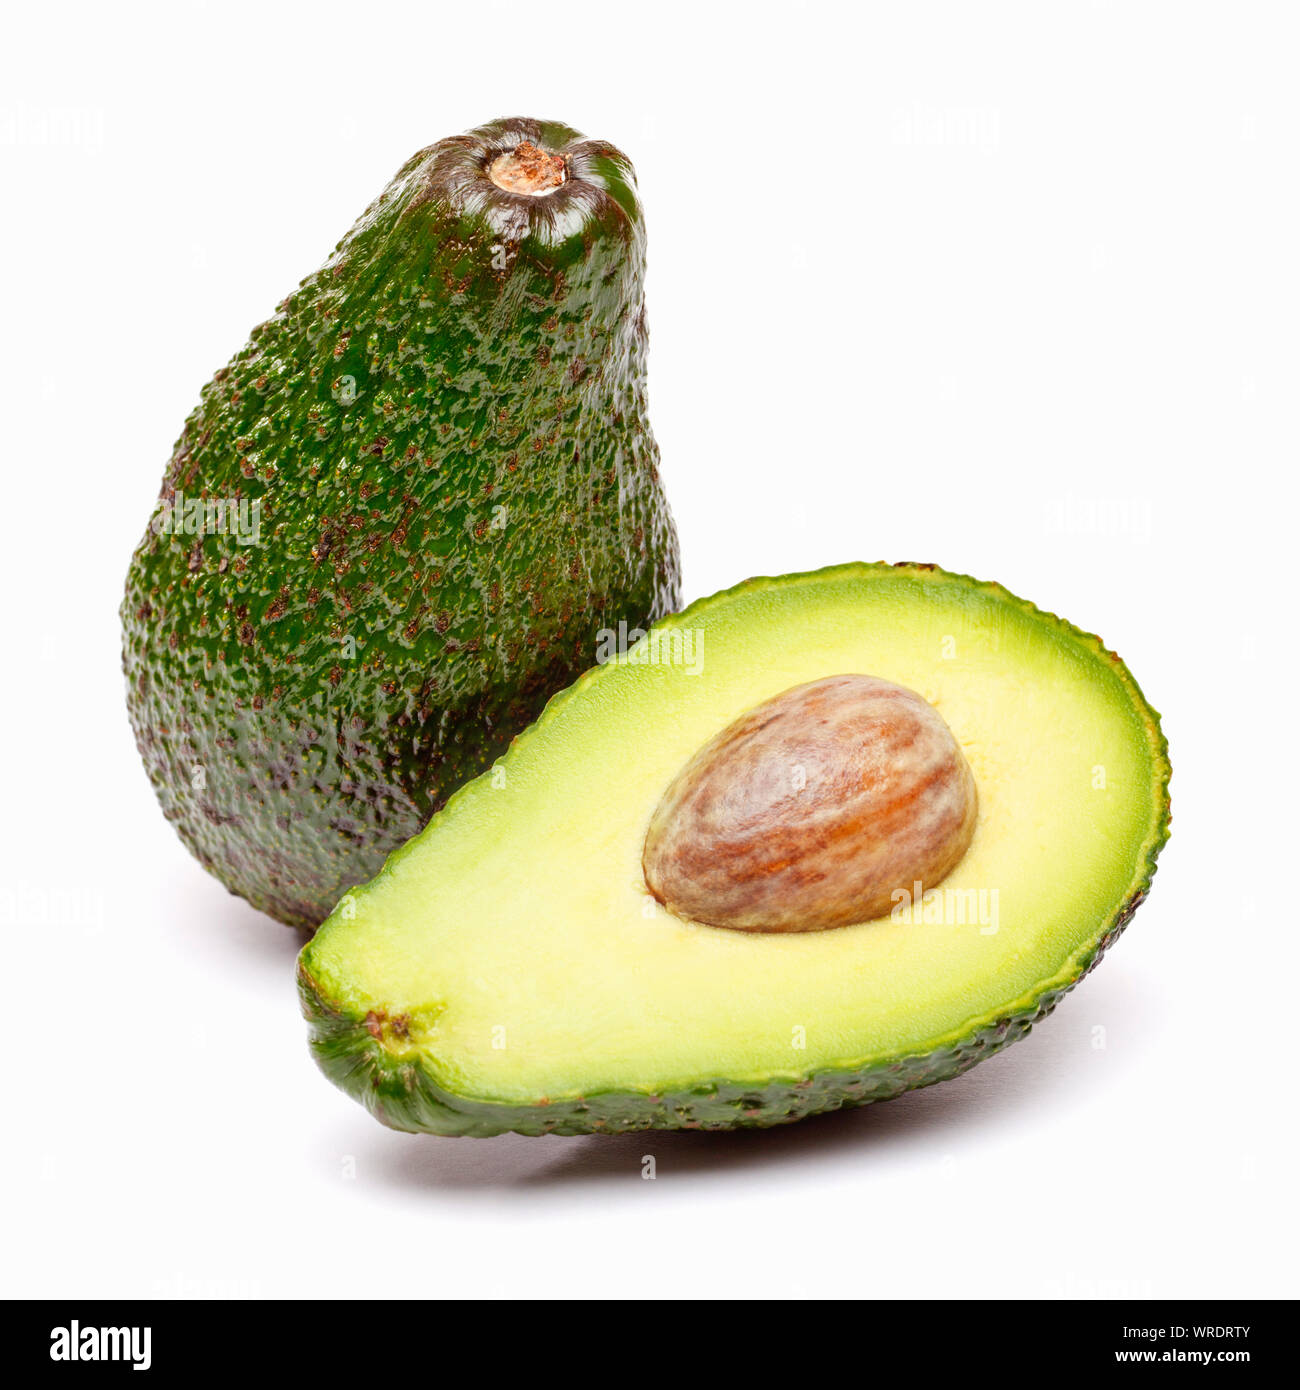 Avocados, whole and sliced in half on a white background Stock Photo